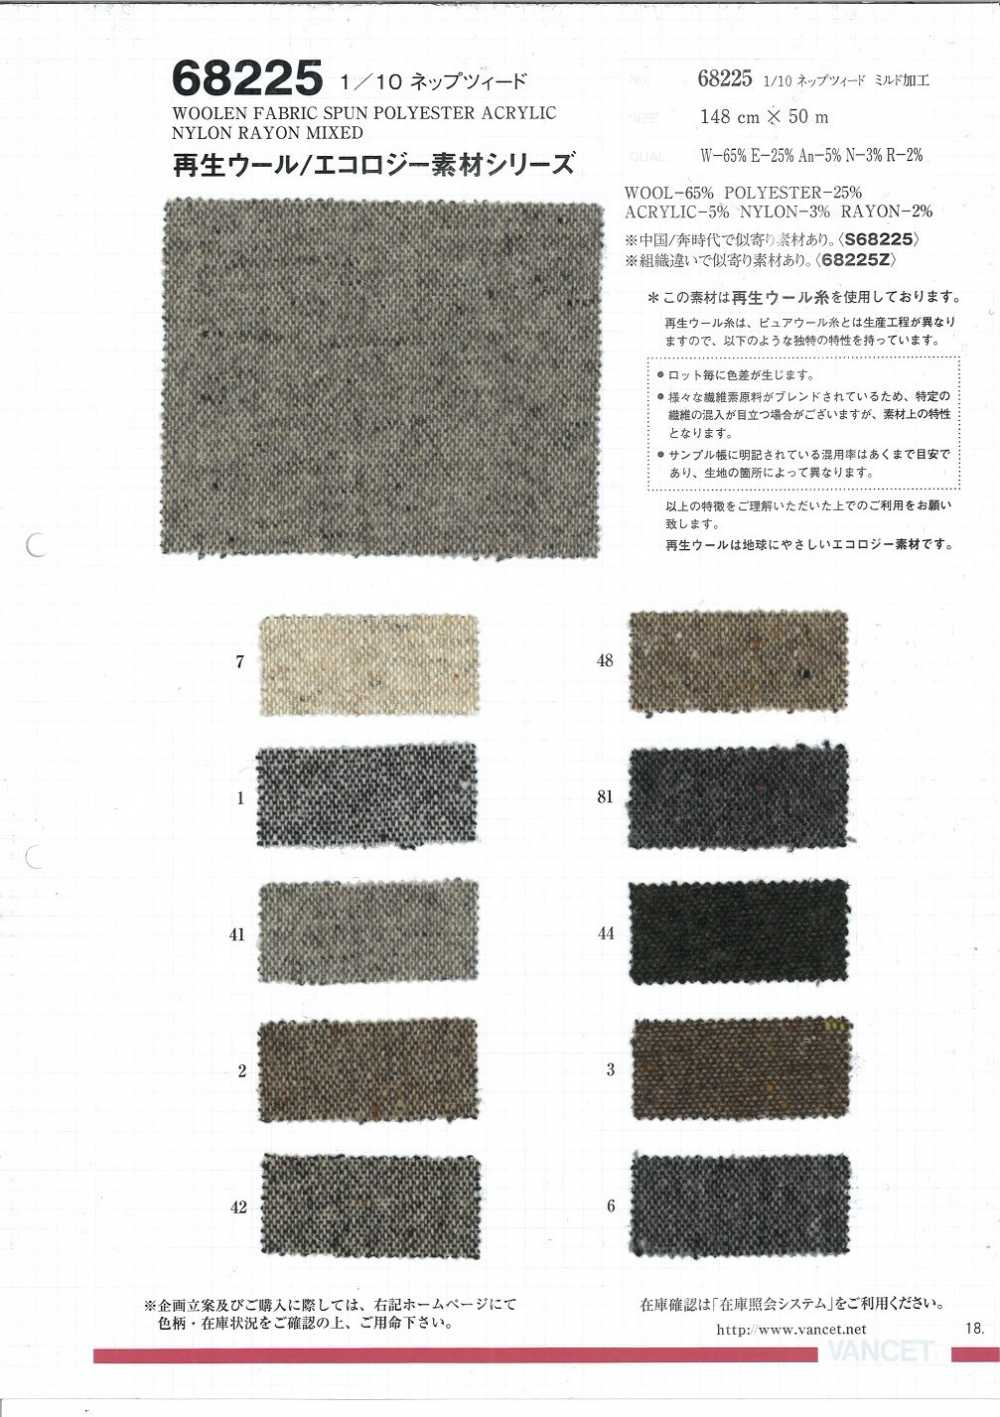 68225-1 1/10 Nep Tweed (1) [Uses Recycled Wool Thread][Textile / Fabric] VANCET